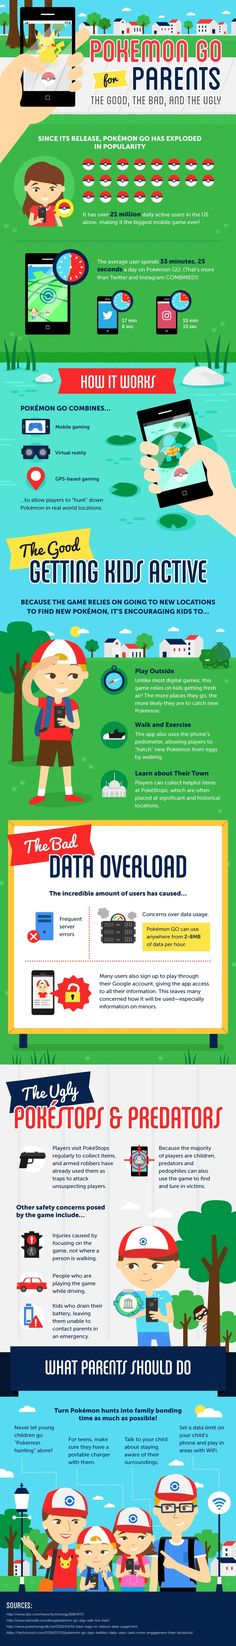 Pokemon GO for parents (Infographic) Parenting Articles, Parenting Memes, Good Parenting, Pokemon Go Cheats, Infographic, Summary, Waffle, Parents, Technology